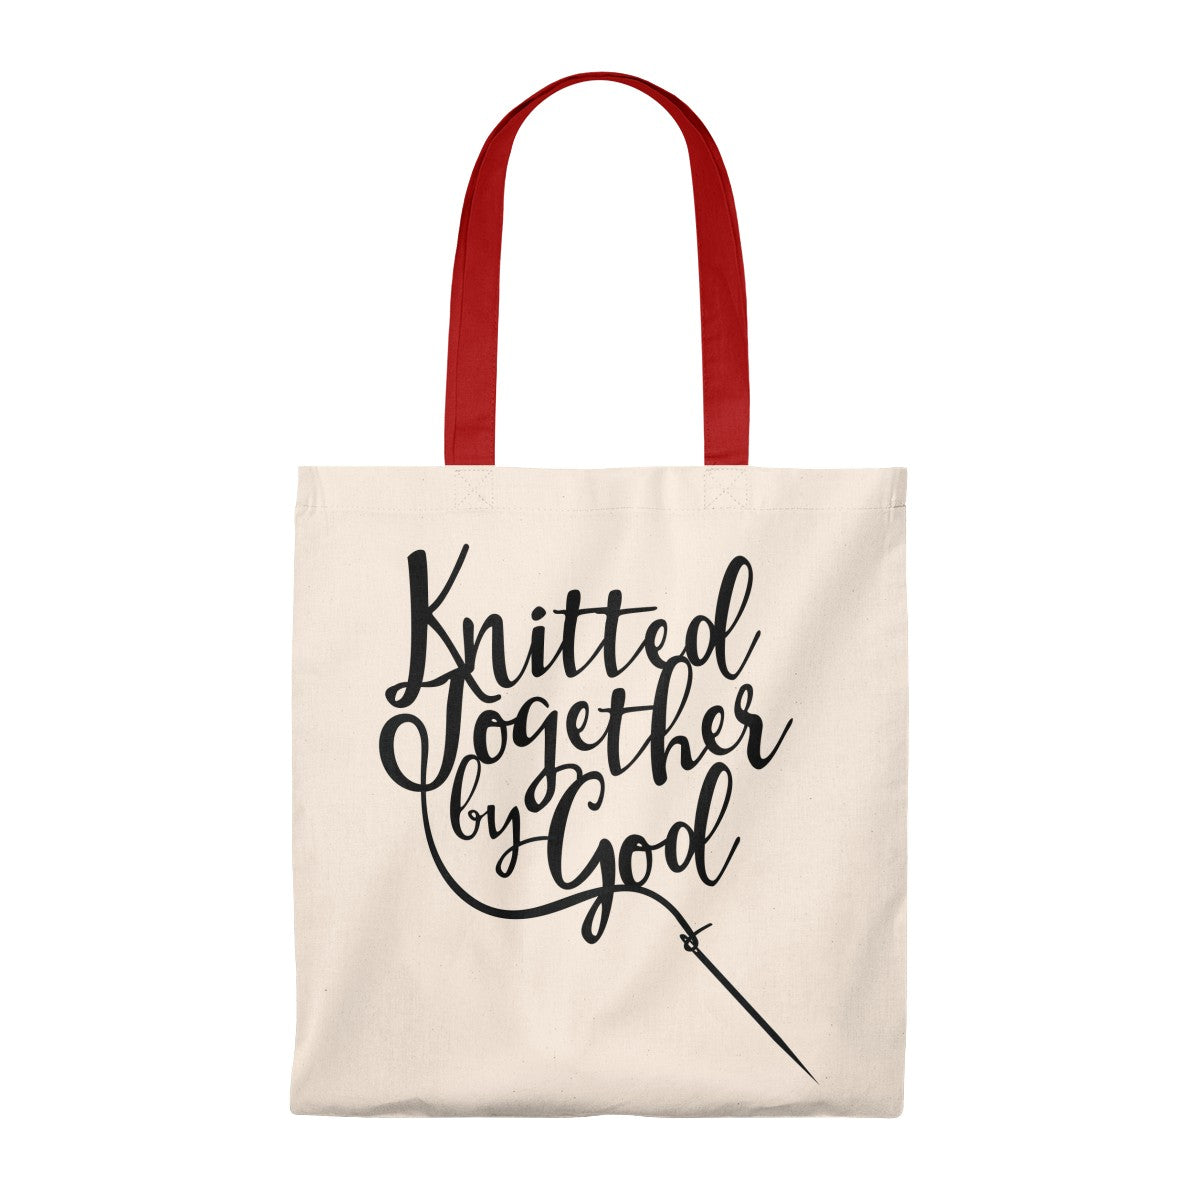 Knitted Together By God Tote Bag - Vintage